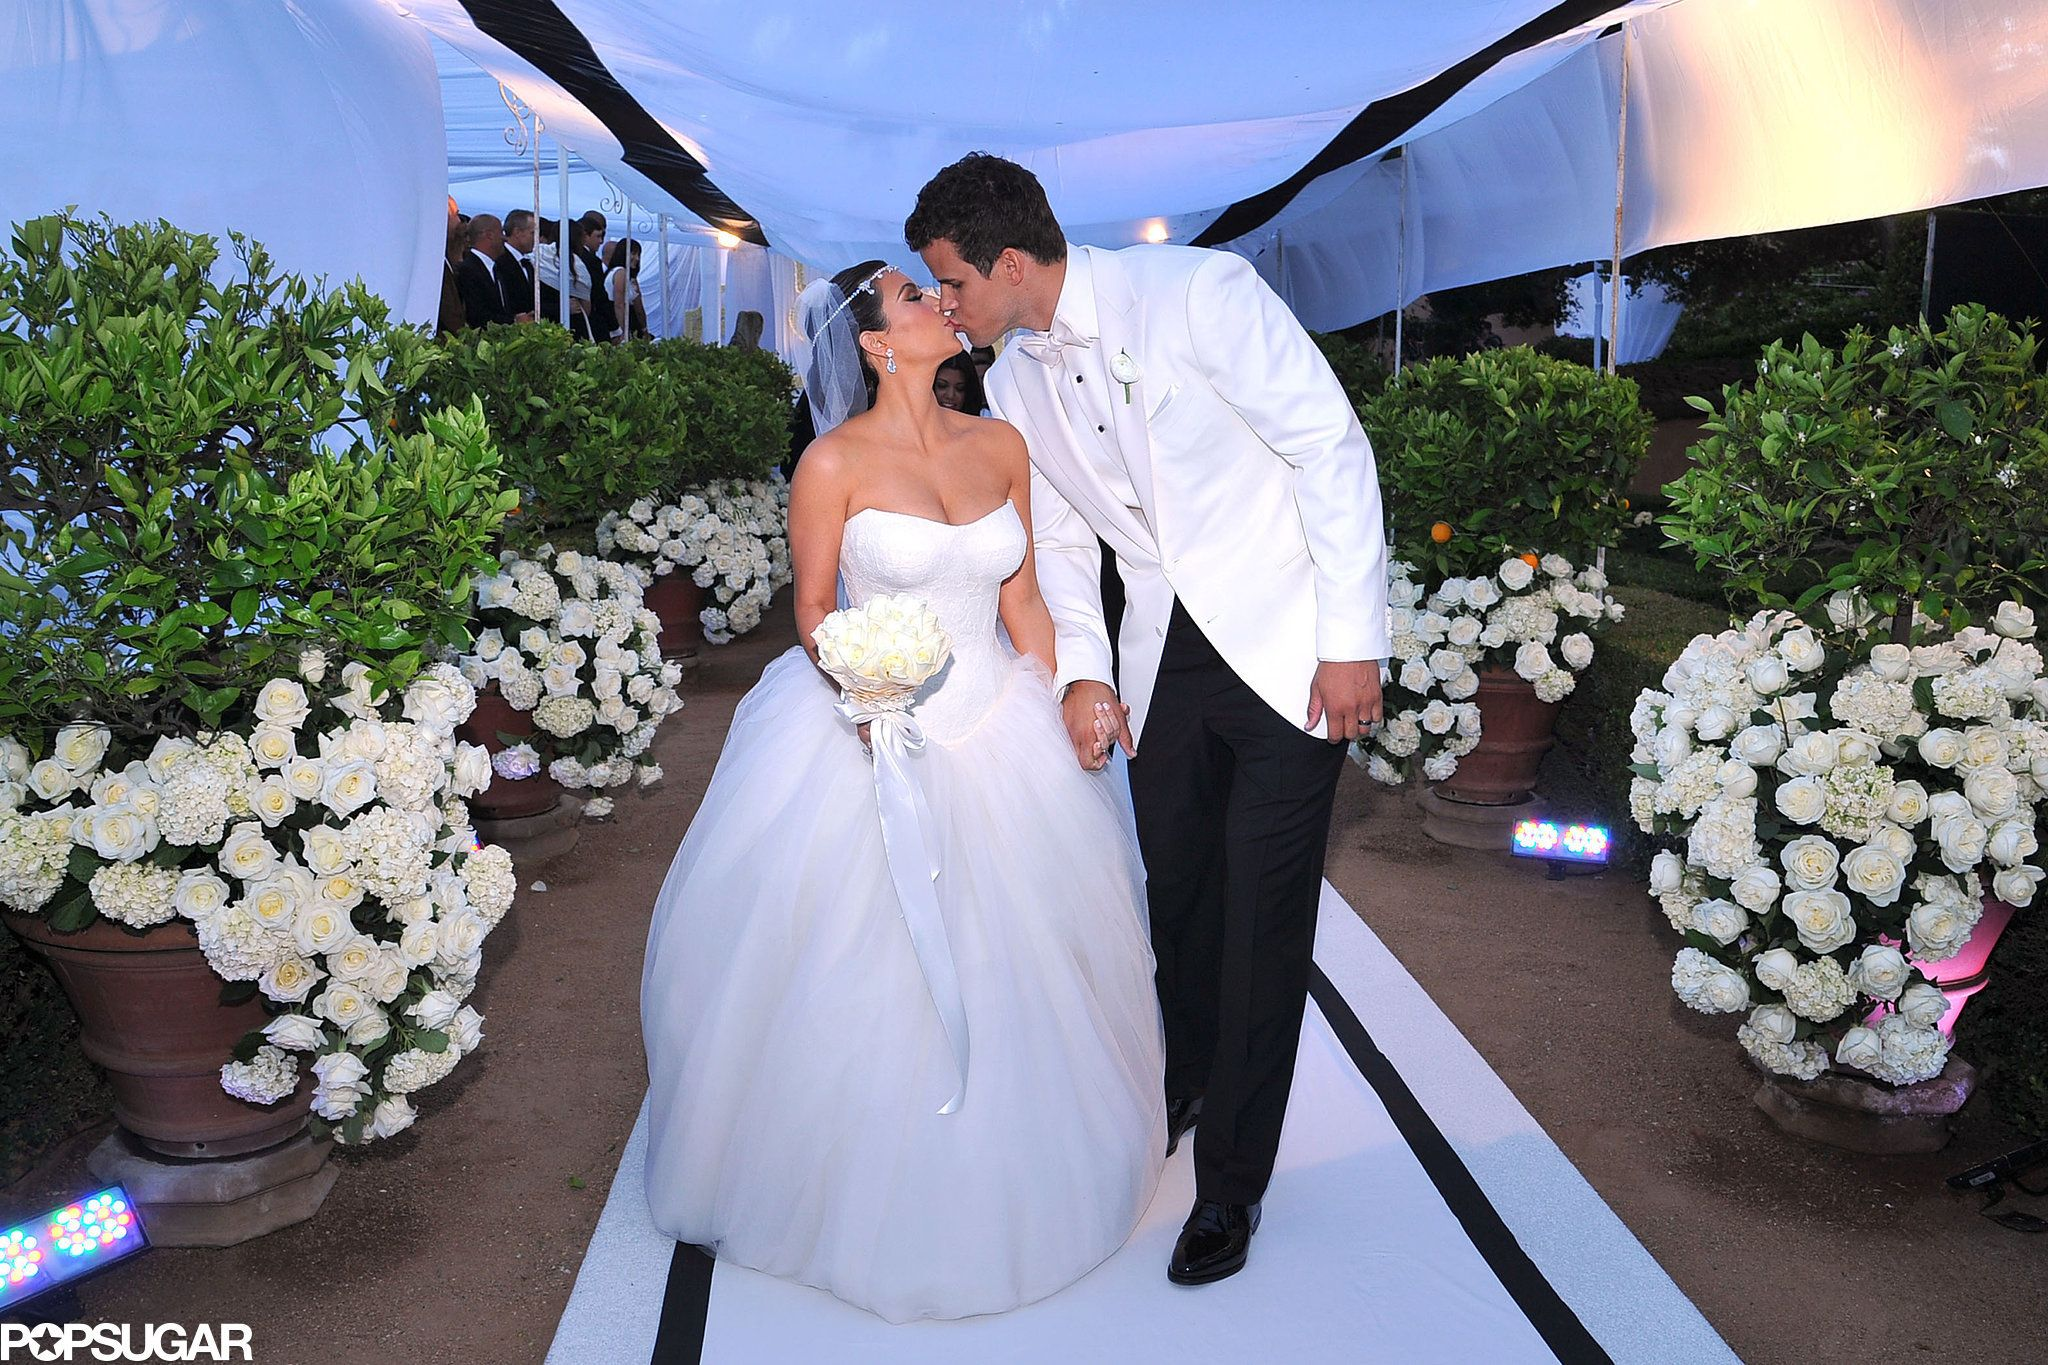 Kardashian and Kris Humphries     Kim and Kris started their 72-day marriage with a Montecito, CA, ceremony that took place in August 2011.